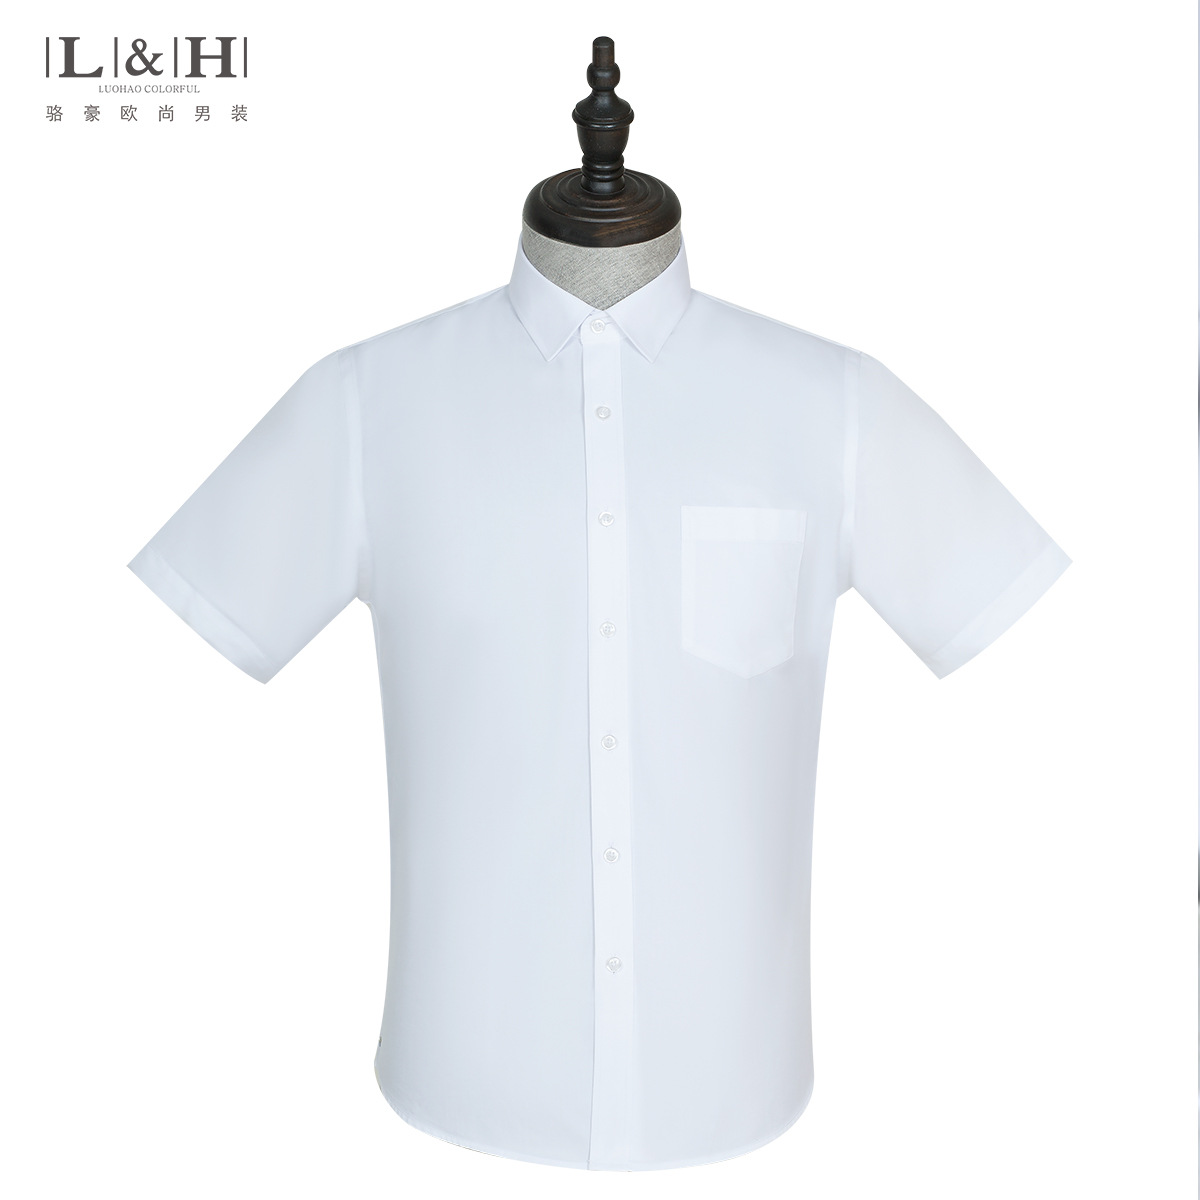 White Button-Down Dress Shirt for Casual and Office Wear